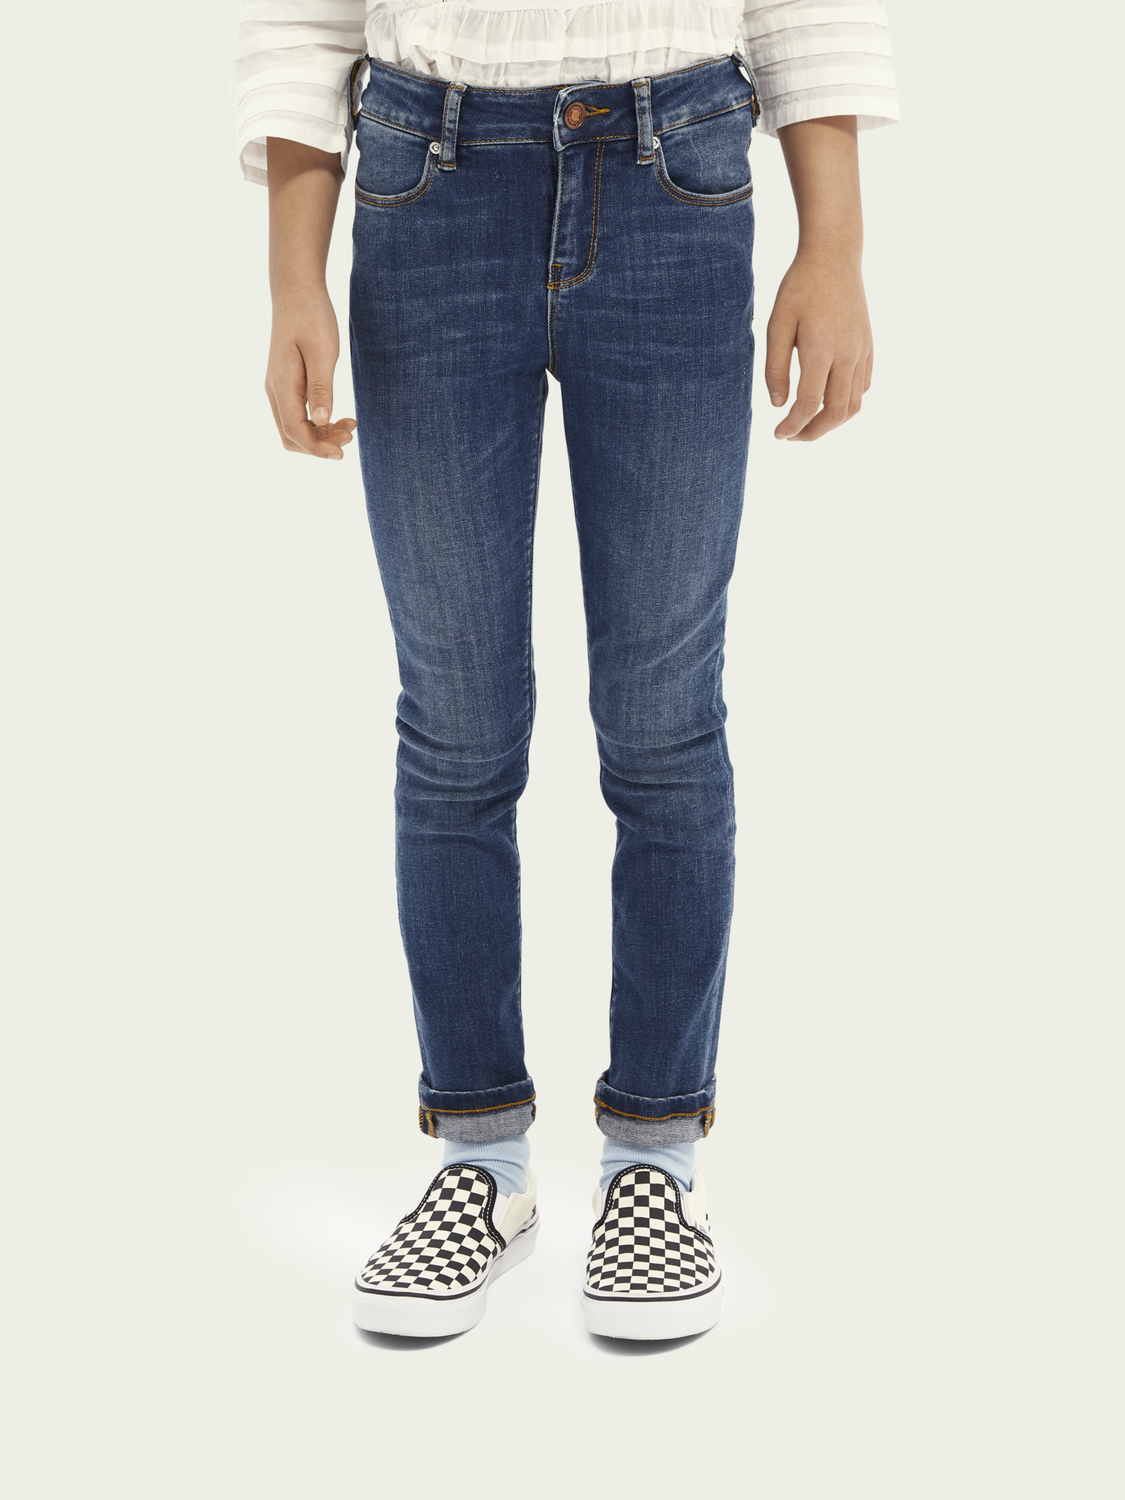 Kinder La Charmante High-Rise Skinny Fit Jeans – Get Ready